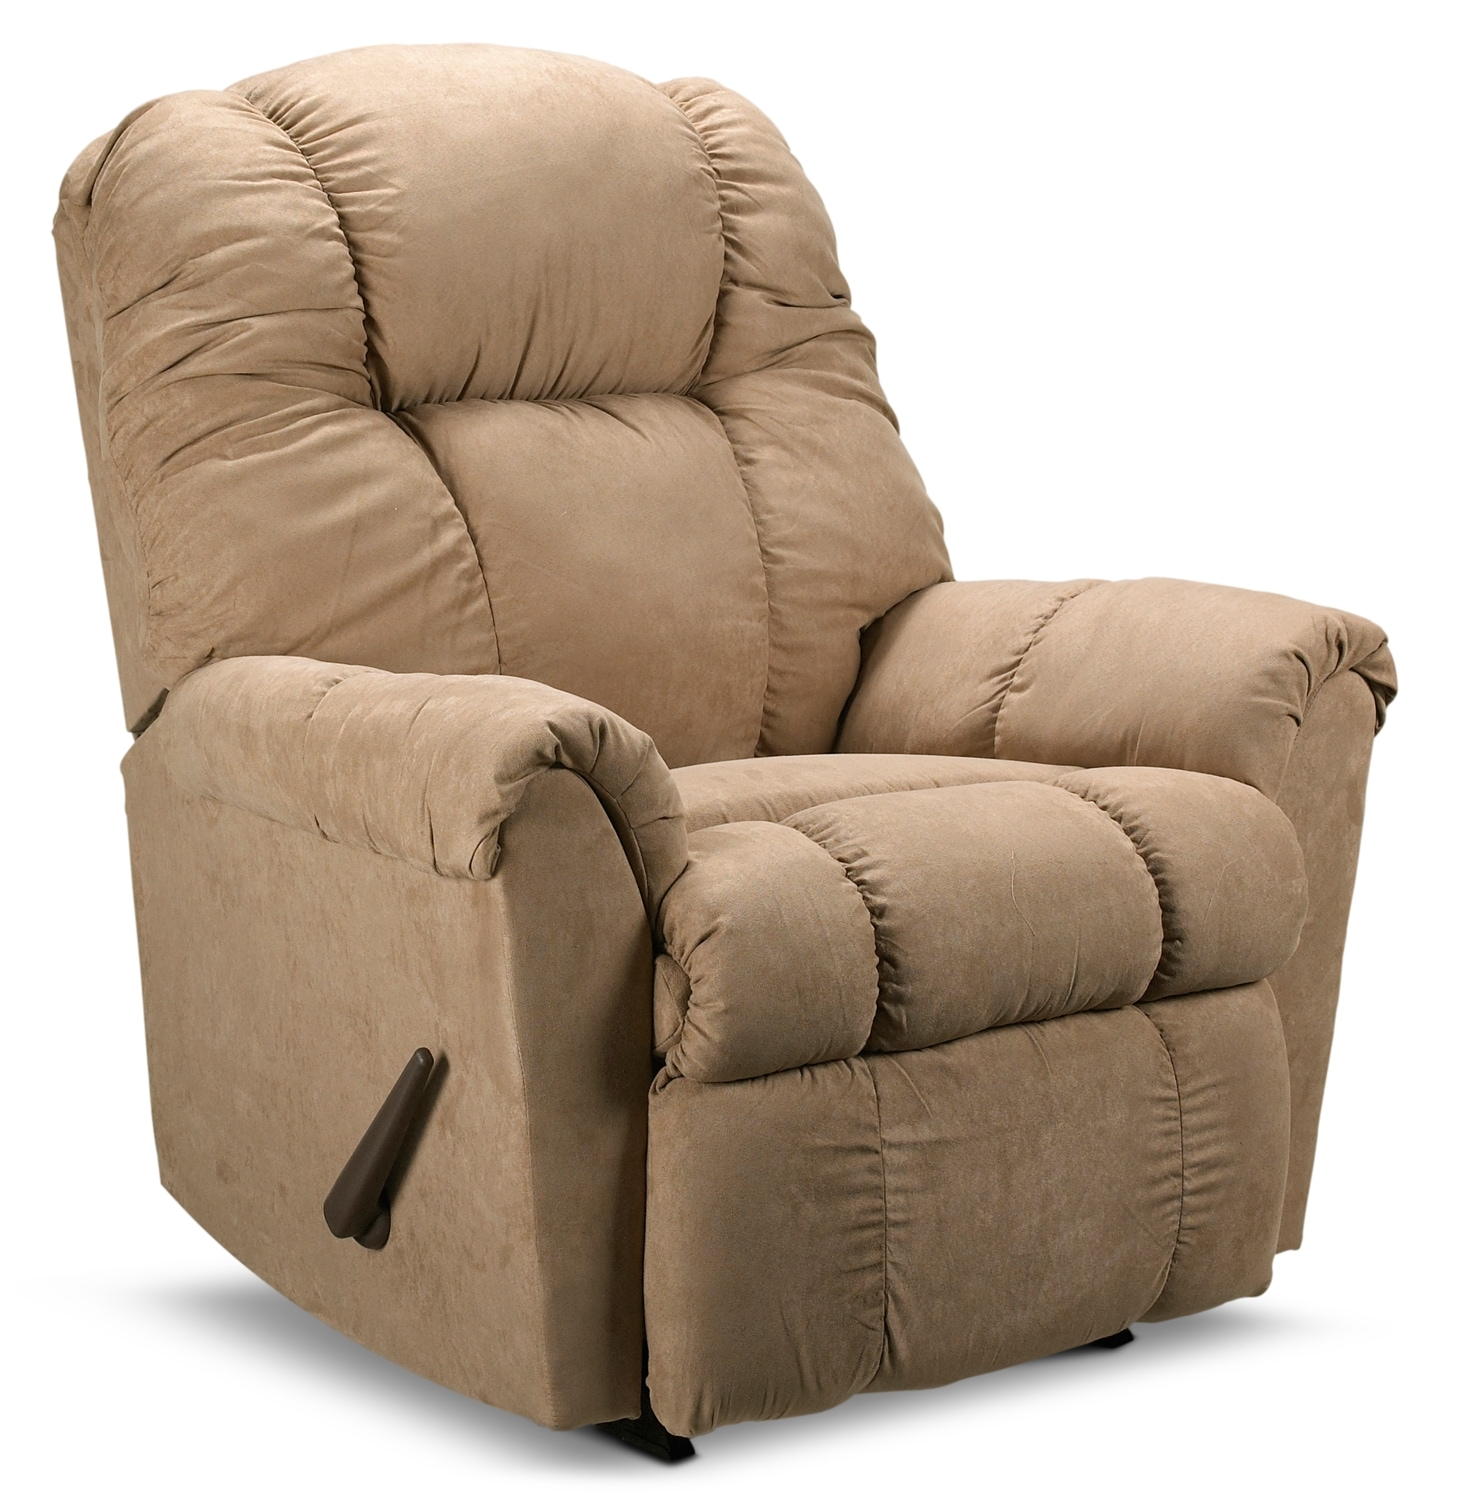 Living Room Furniture - Benson Rocker Recliner - Beige